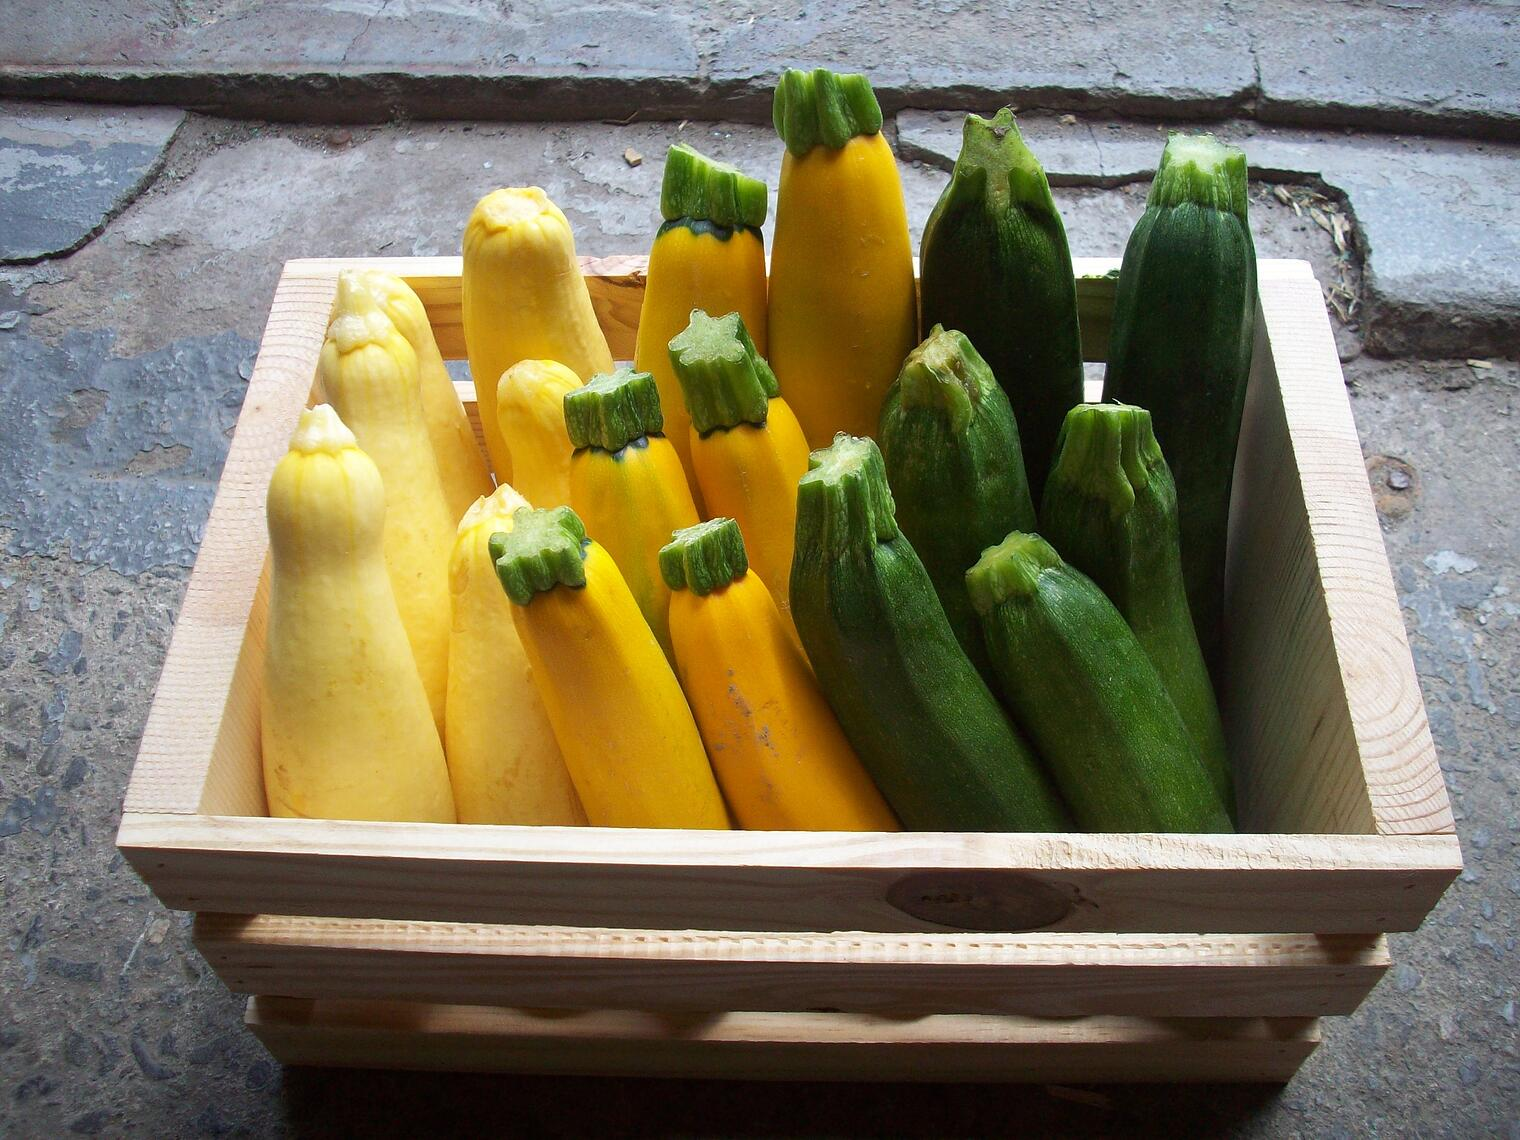 summer_squash_mixed_crate_3050px.jpg